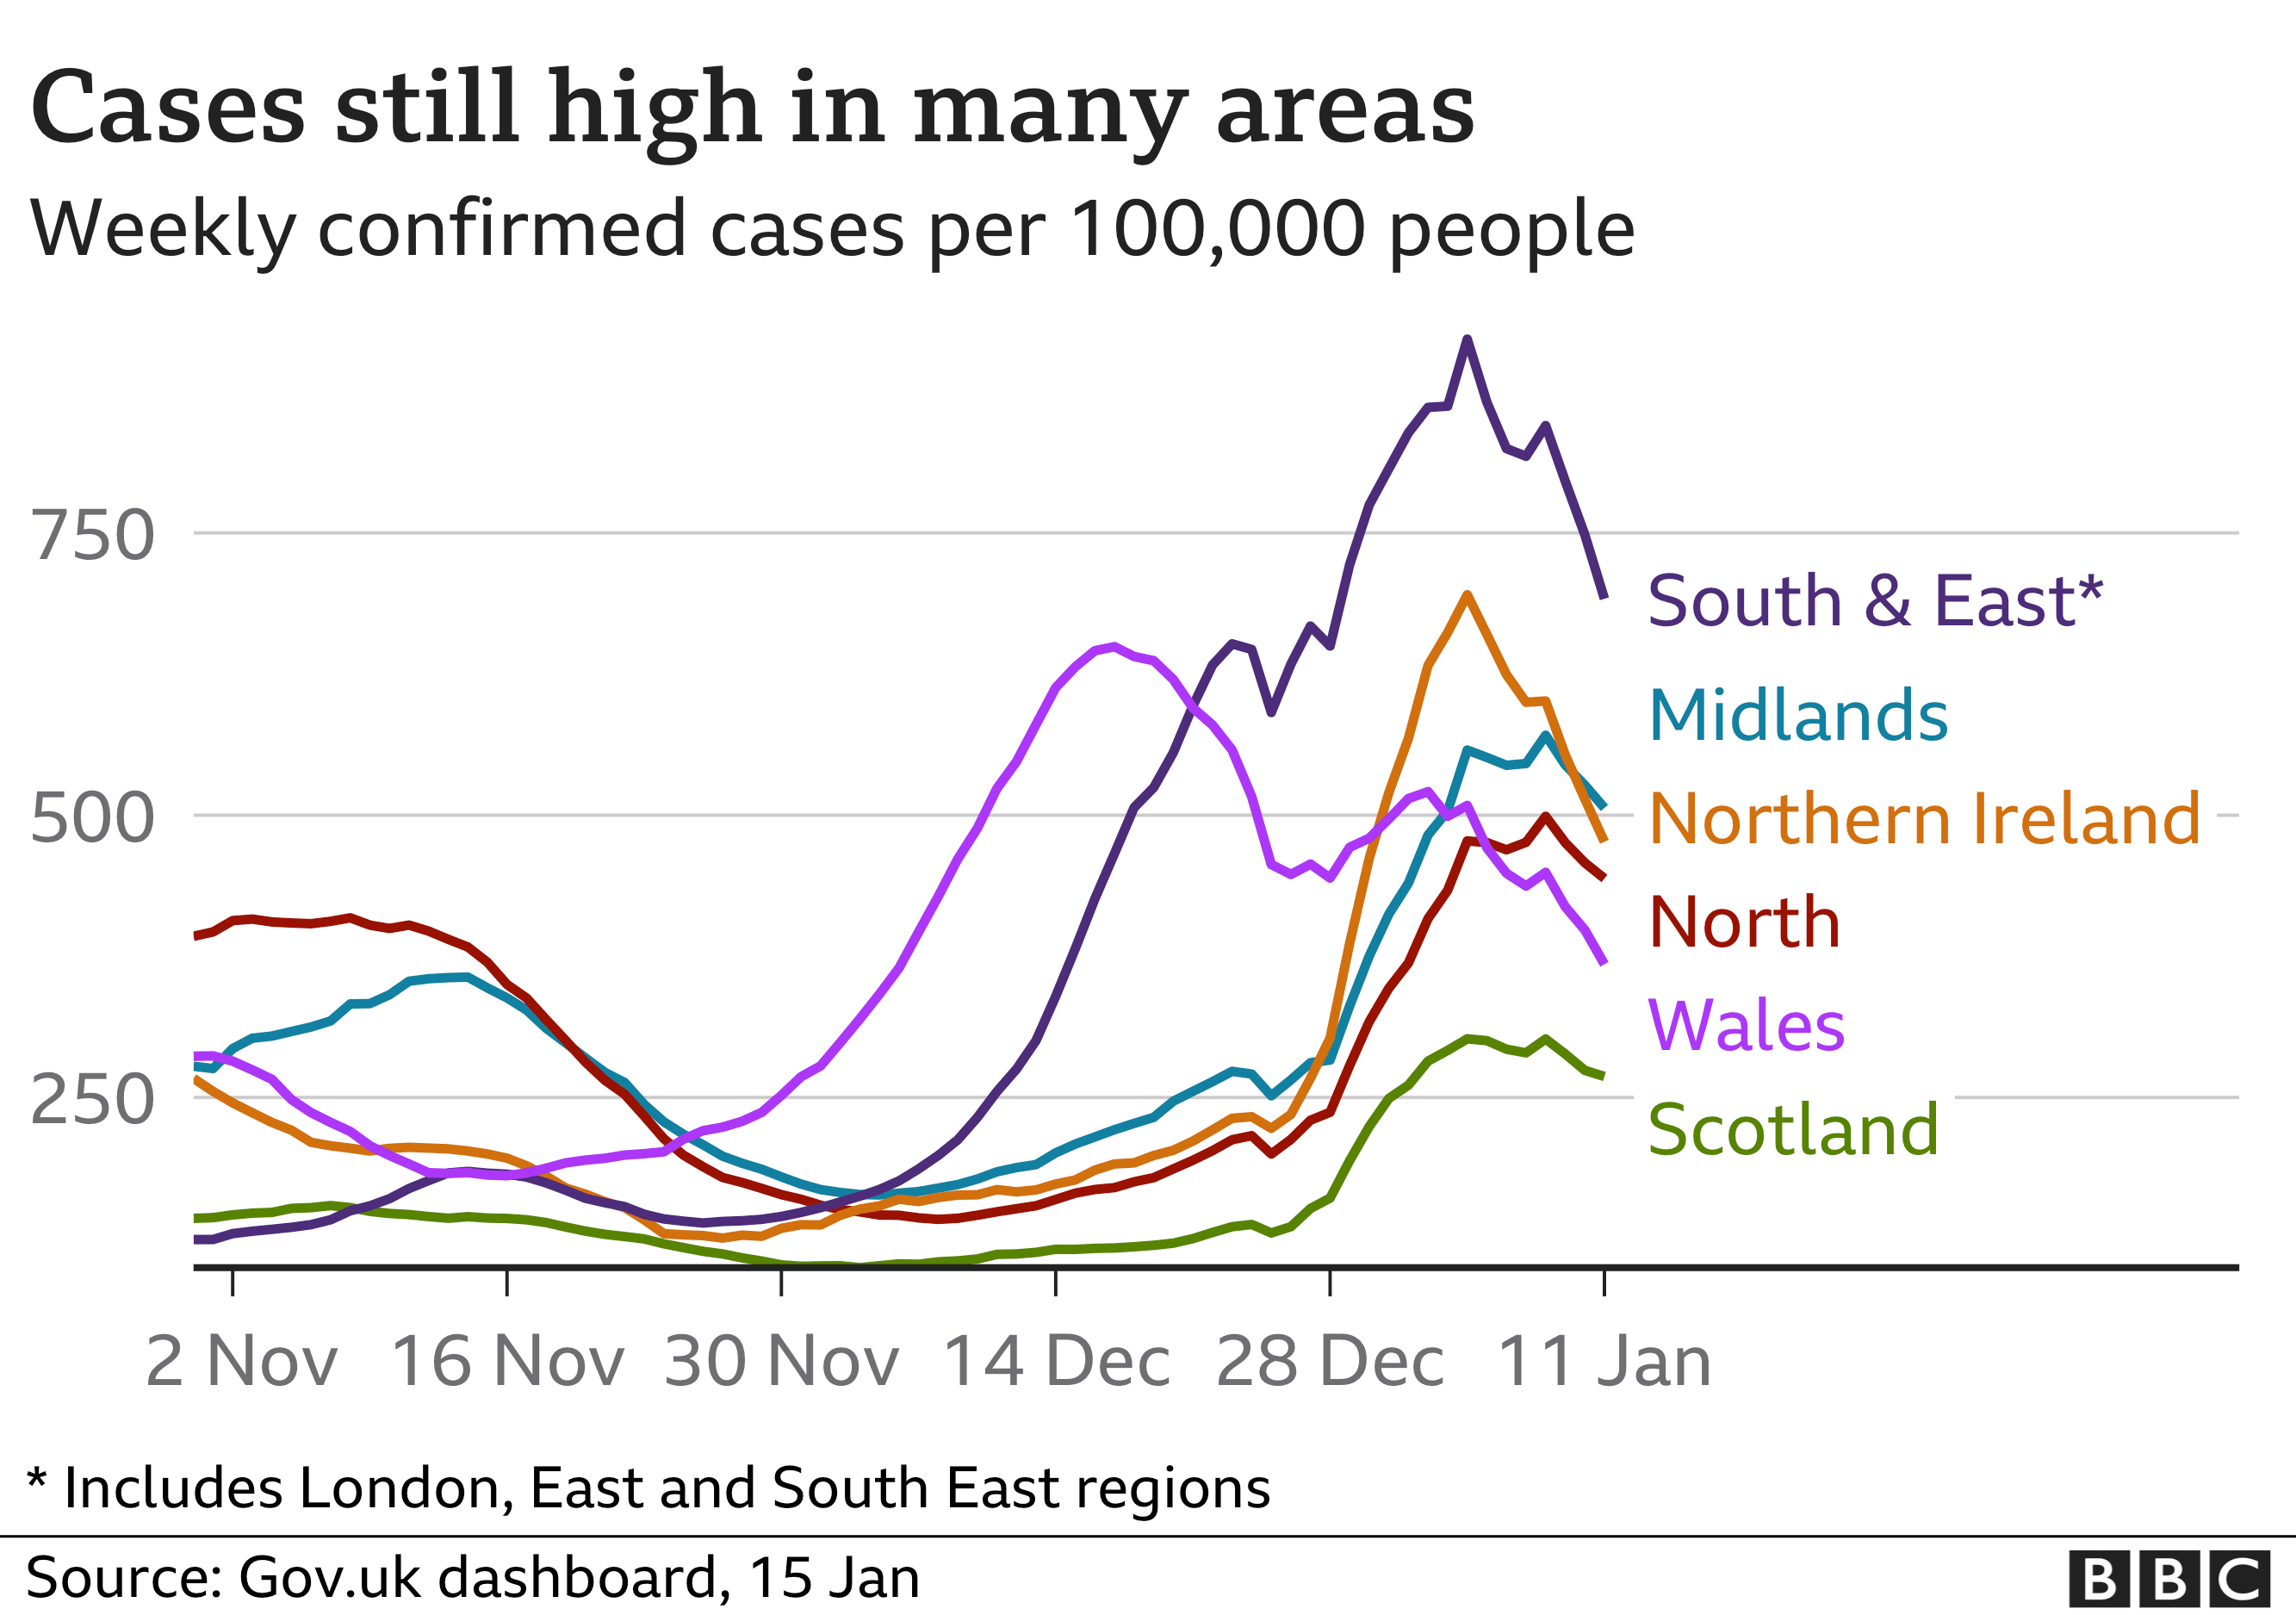 Chart shows early signs that cases may be falling. Updated 15th Jan.